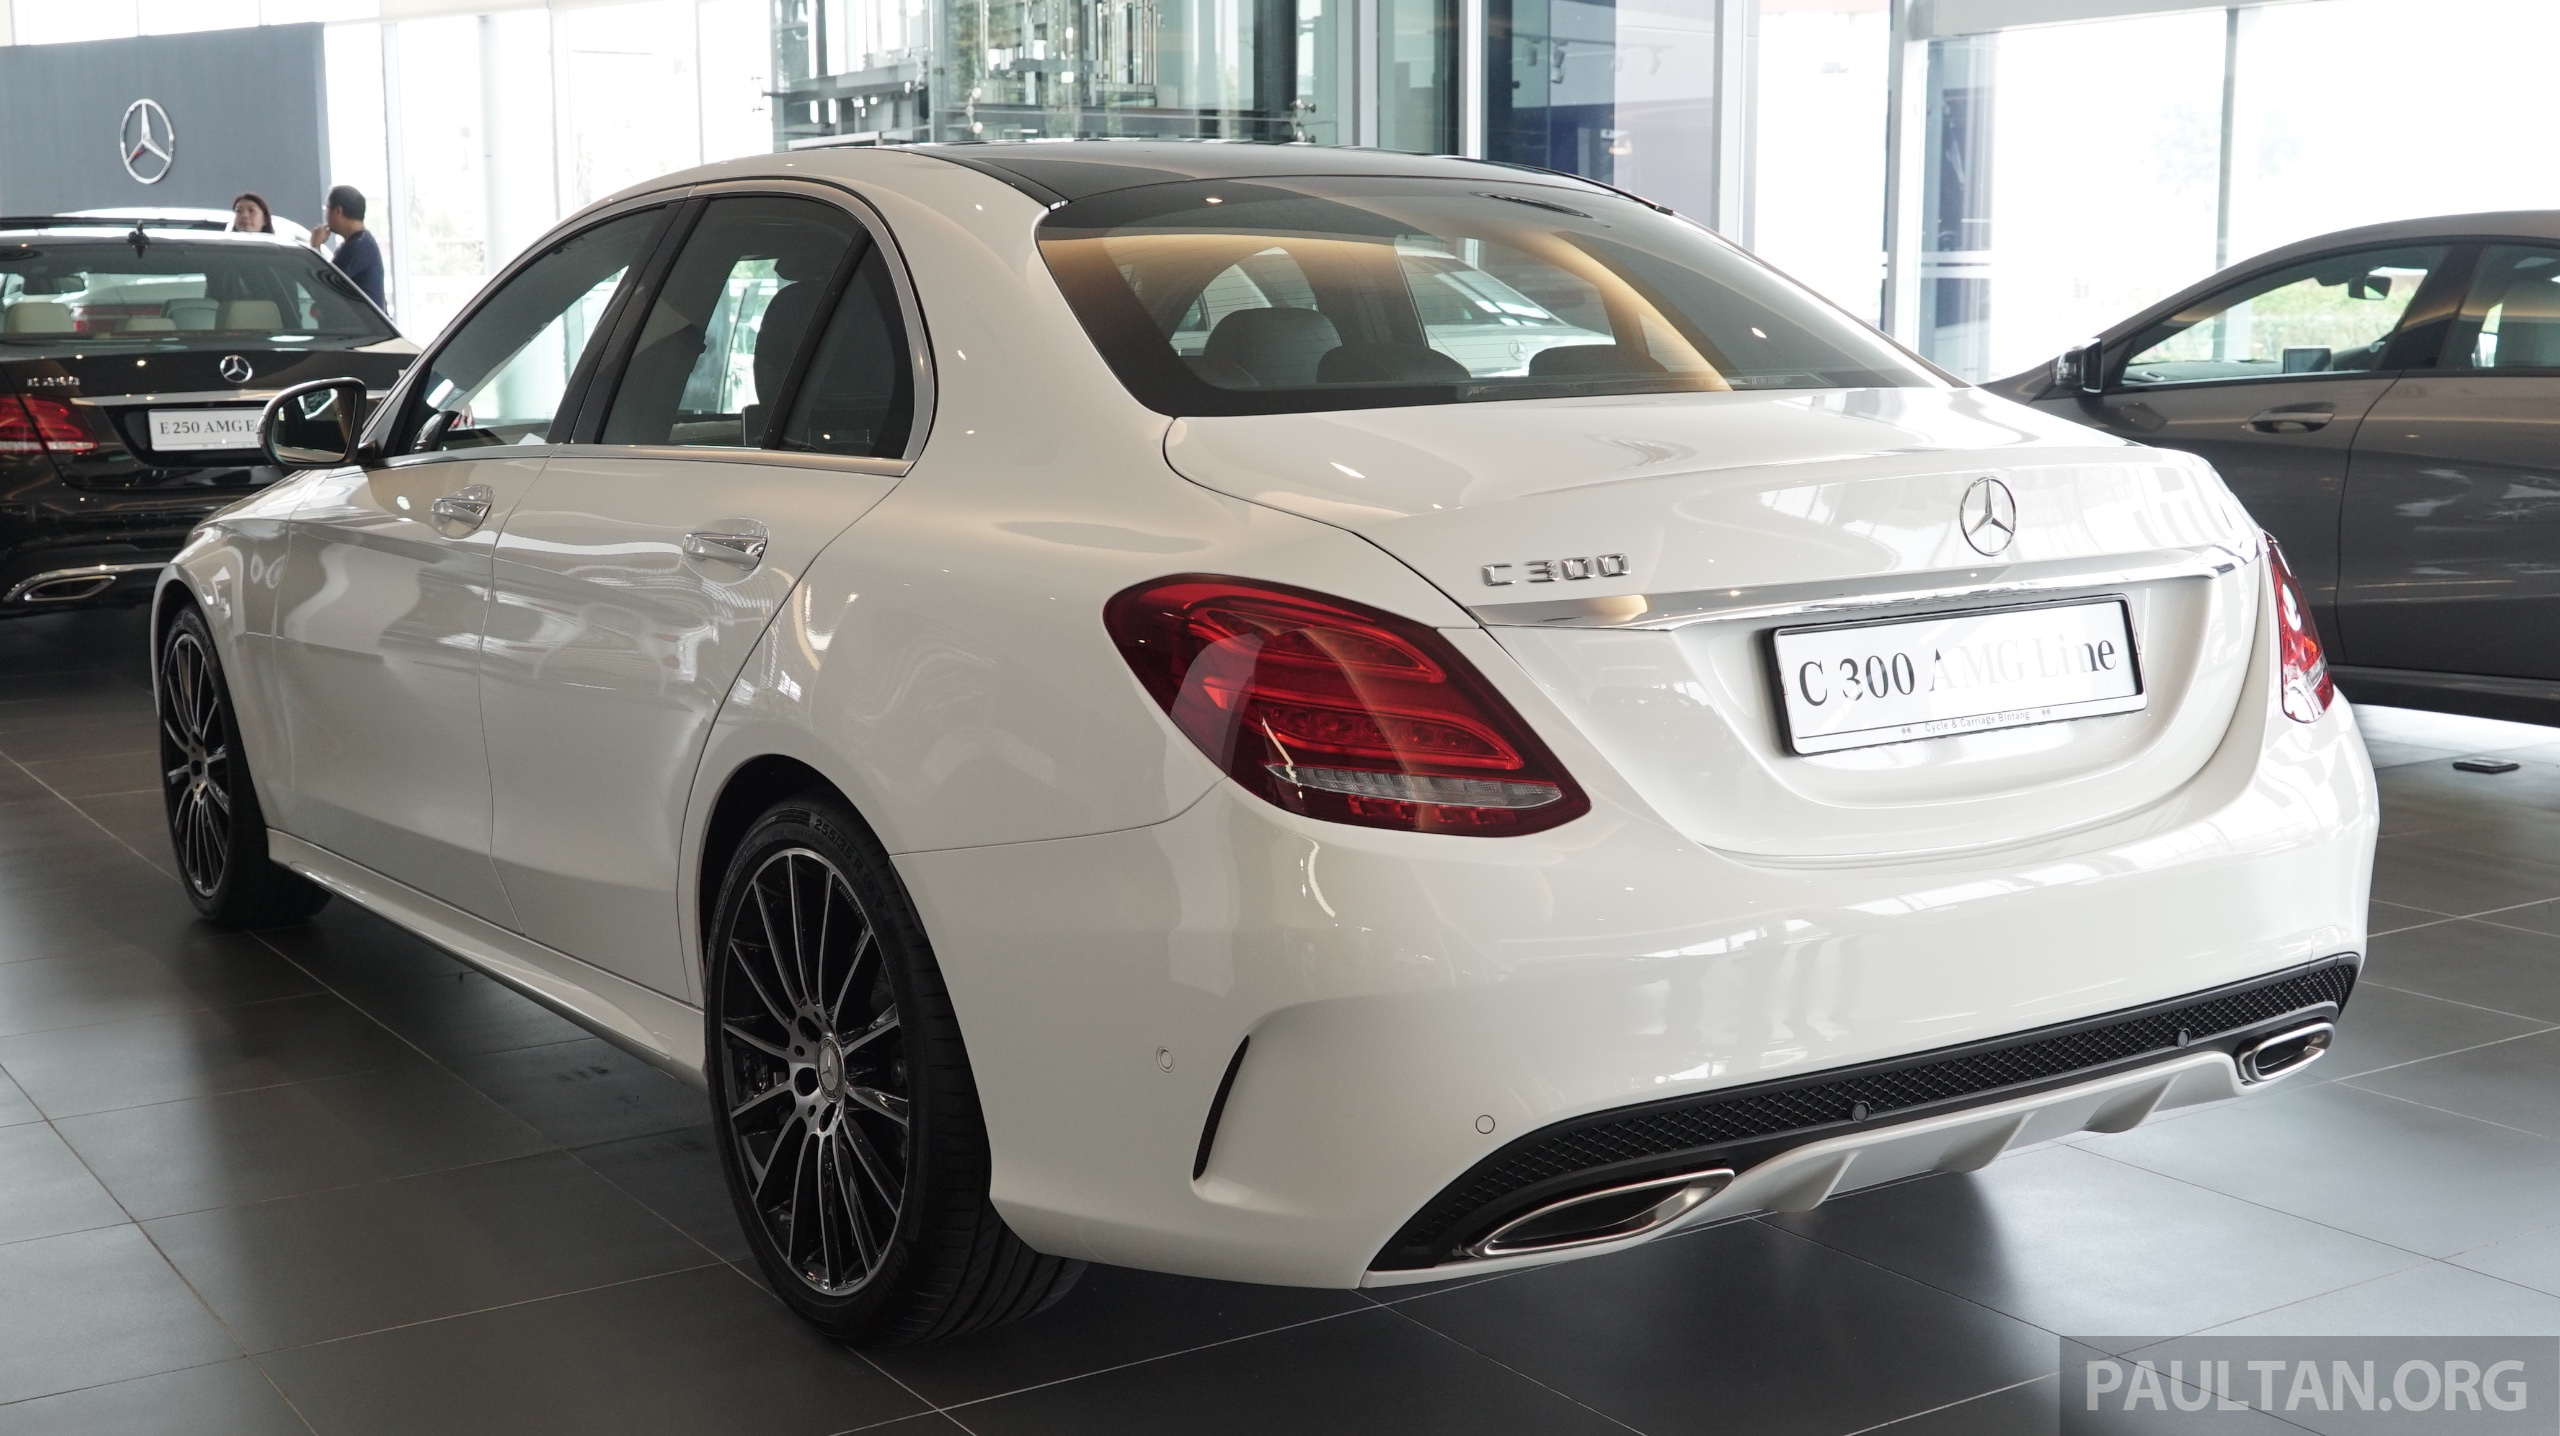 Mercedes Benz Amg >> GALLERY: W205 Mercedes-Benz C180 Avantgarde and C300 AMG ...